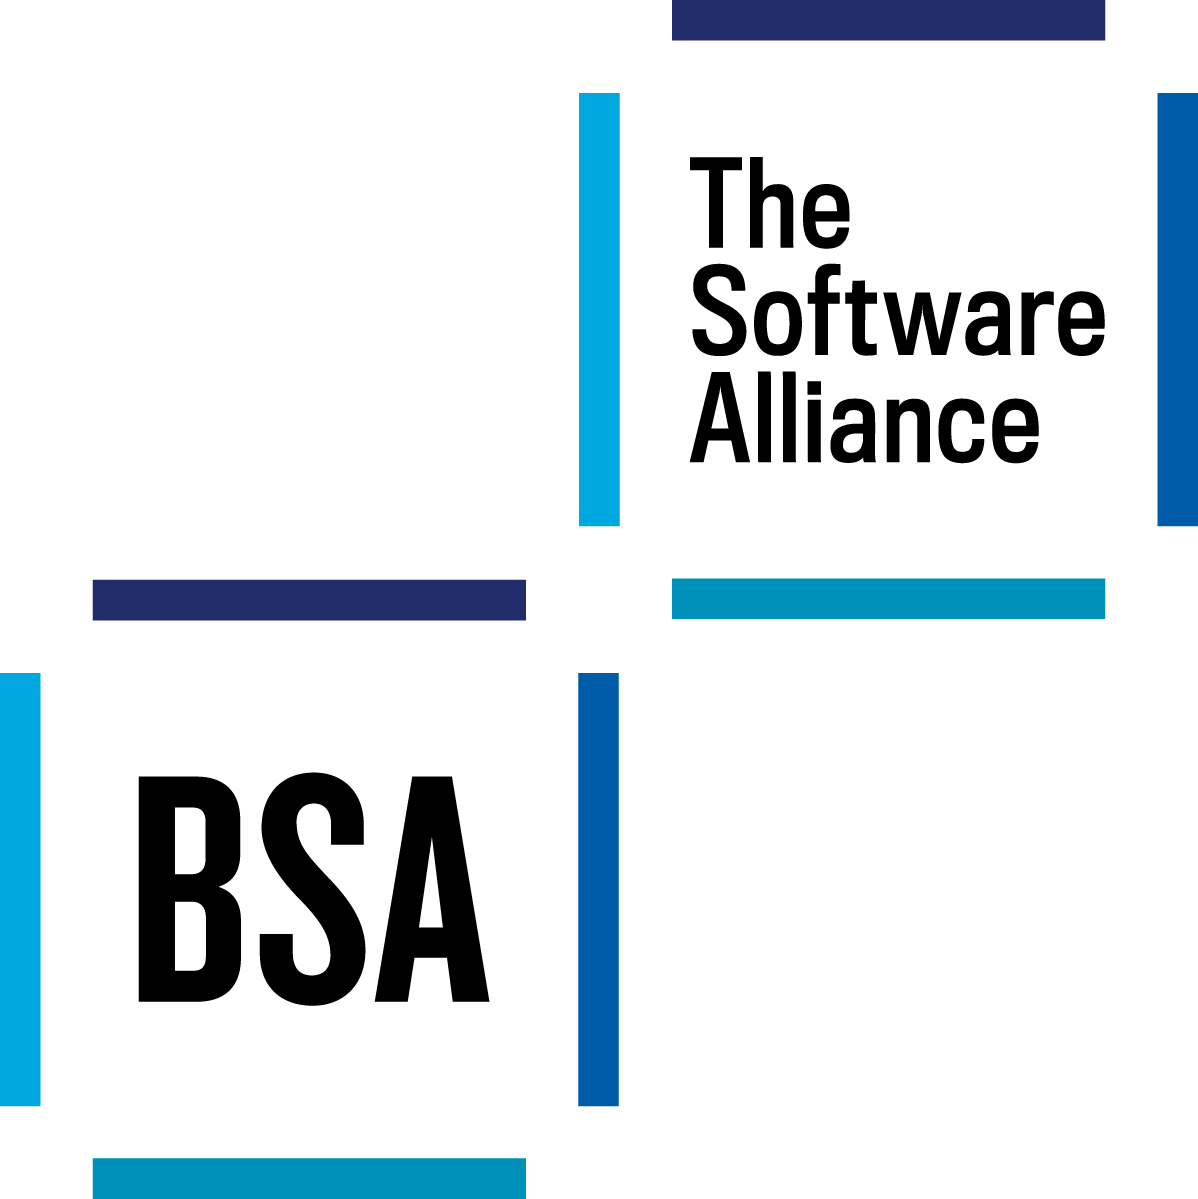 BSA_PRIMARY_LOGO_jpg